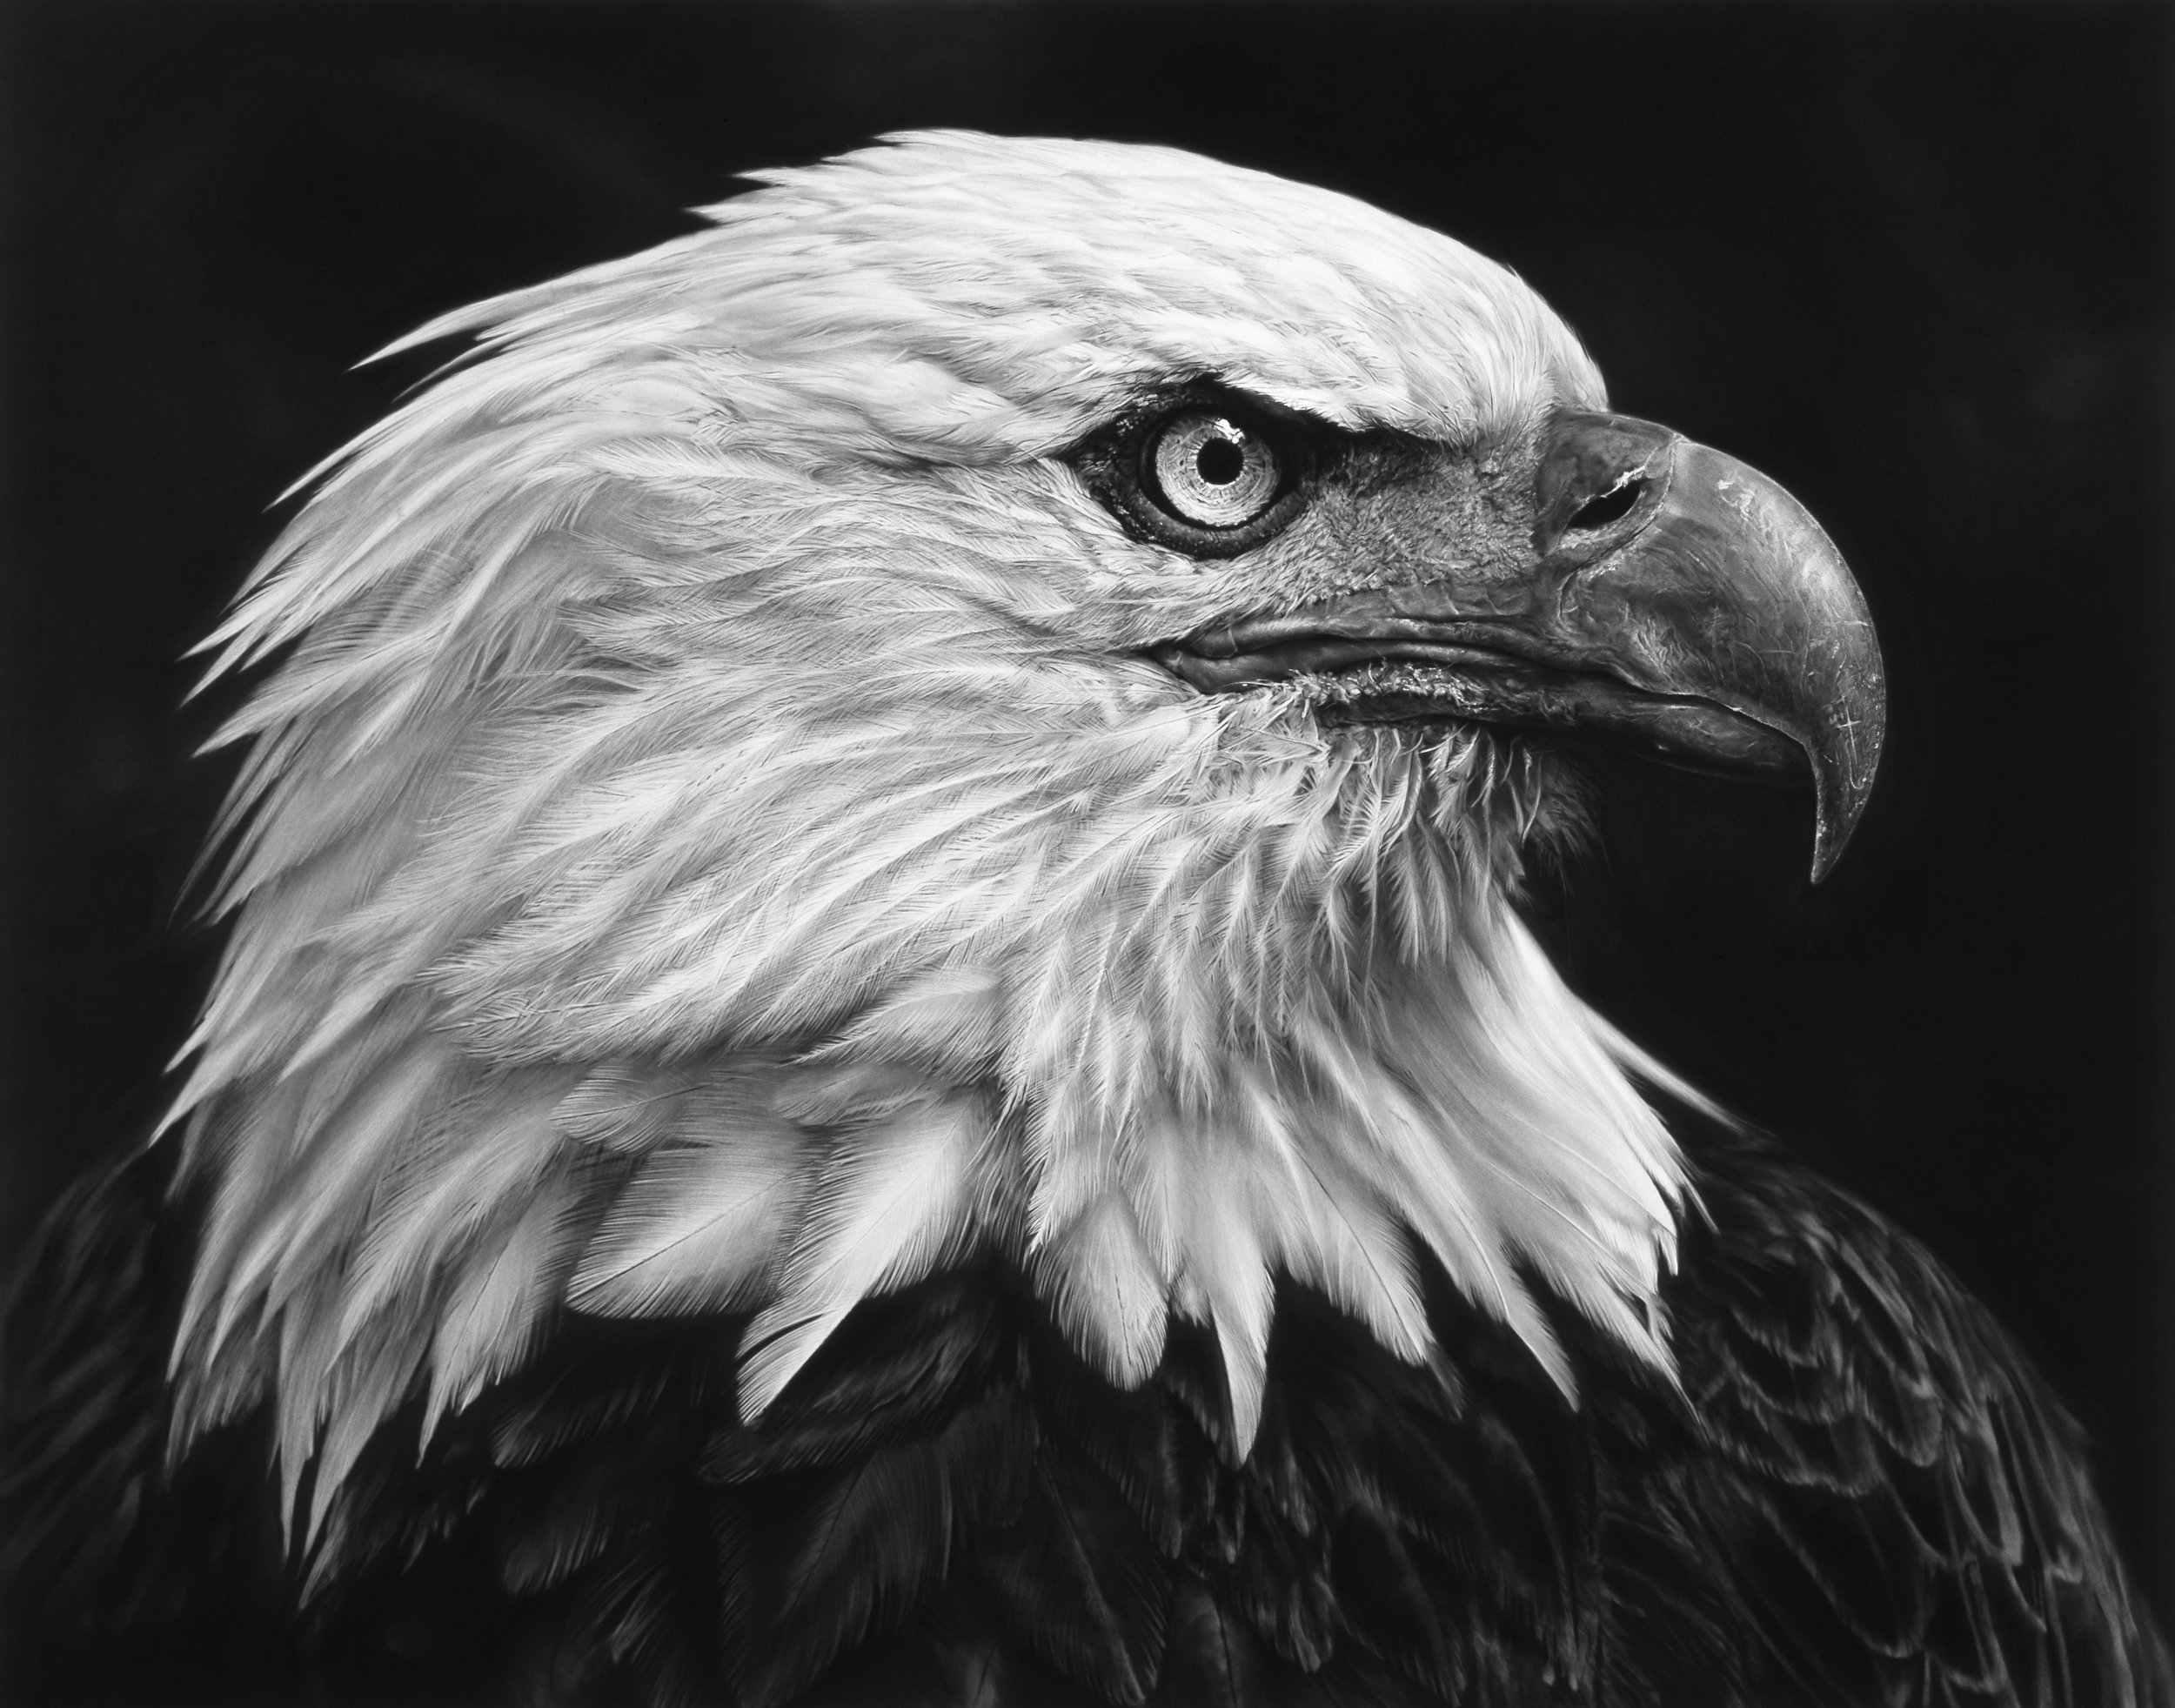 Robert Longo: Untitled (American Bald Eagle) 2017. Charcoal on mounted paper. Ståhl Collection, Norrköping, Sweden. © Robert Longo